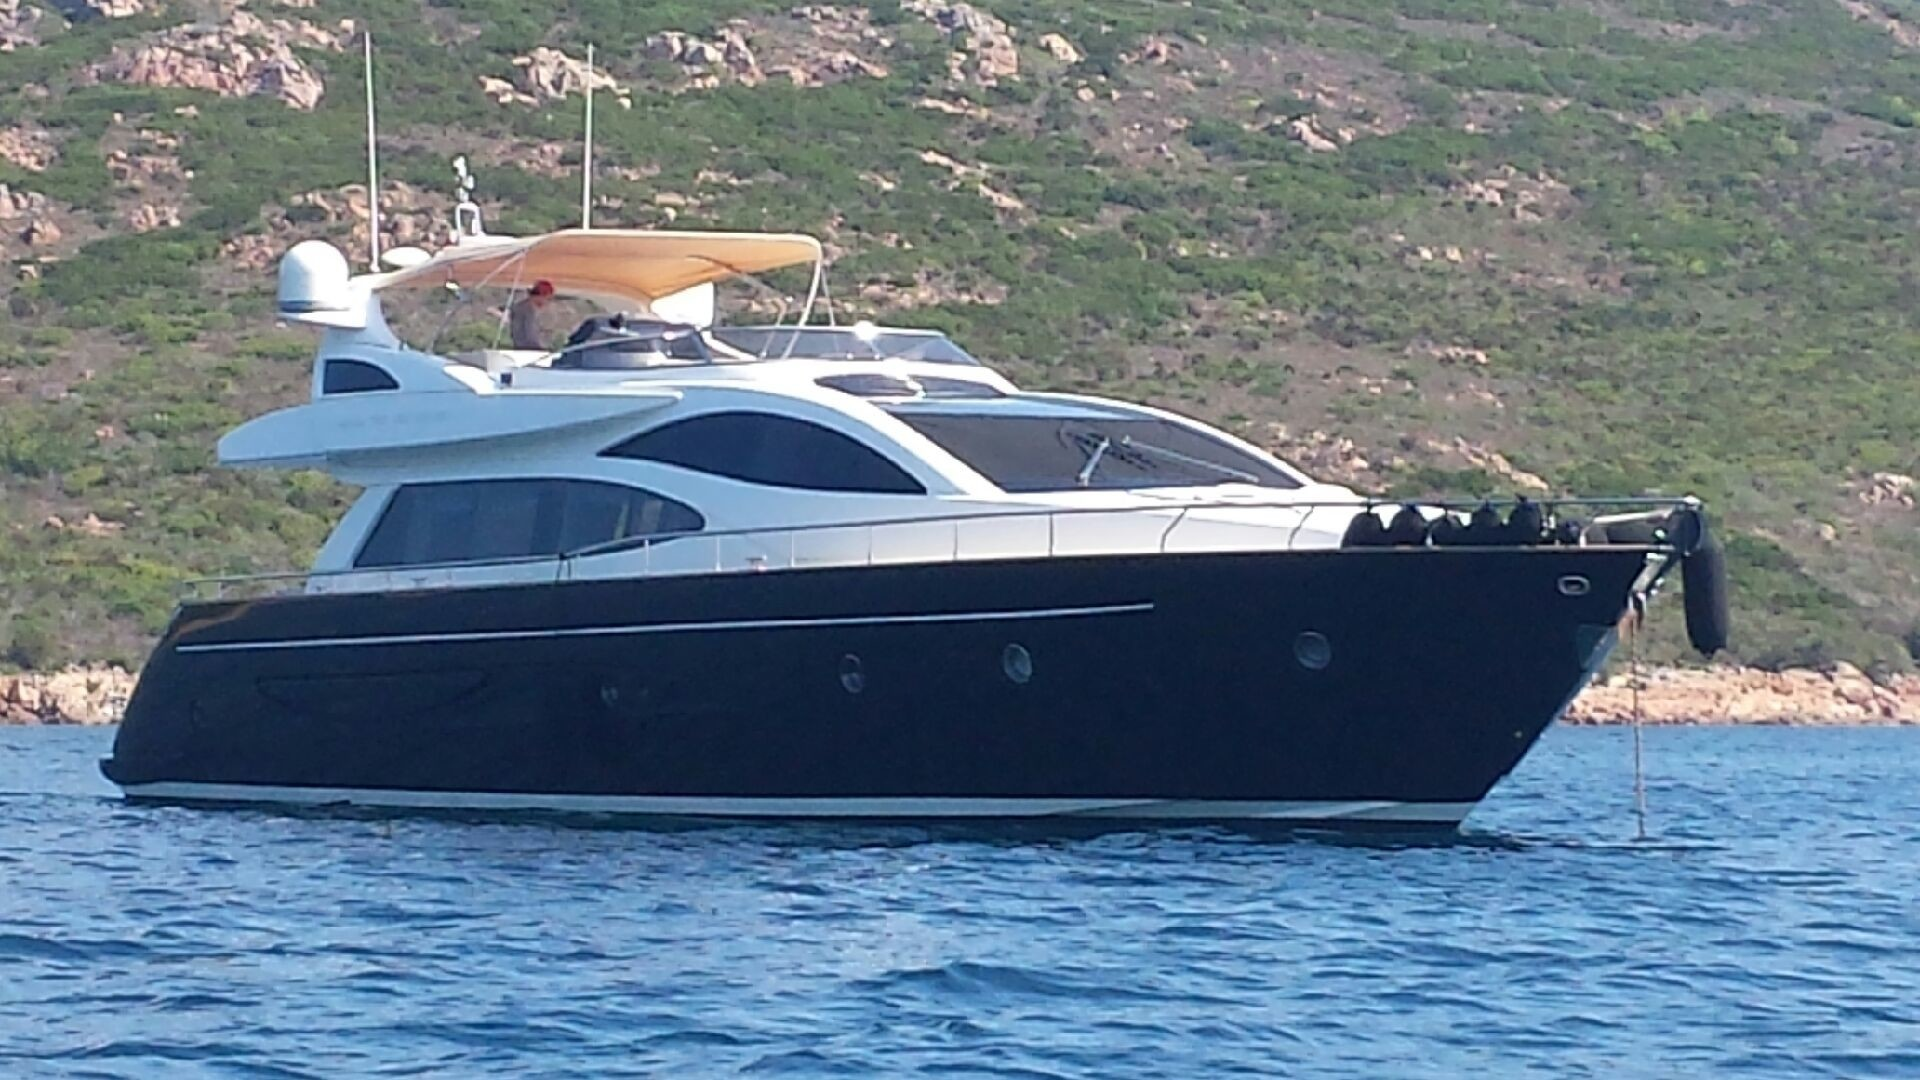 The 23m Yacht DOLCE MIA